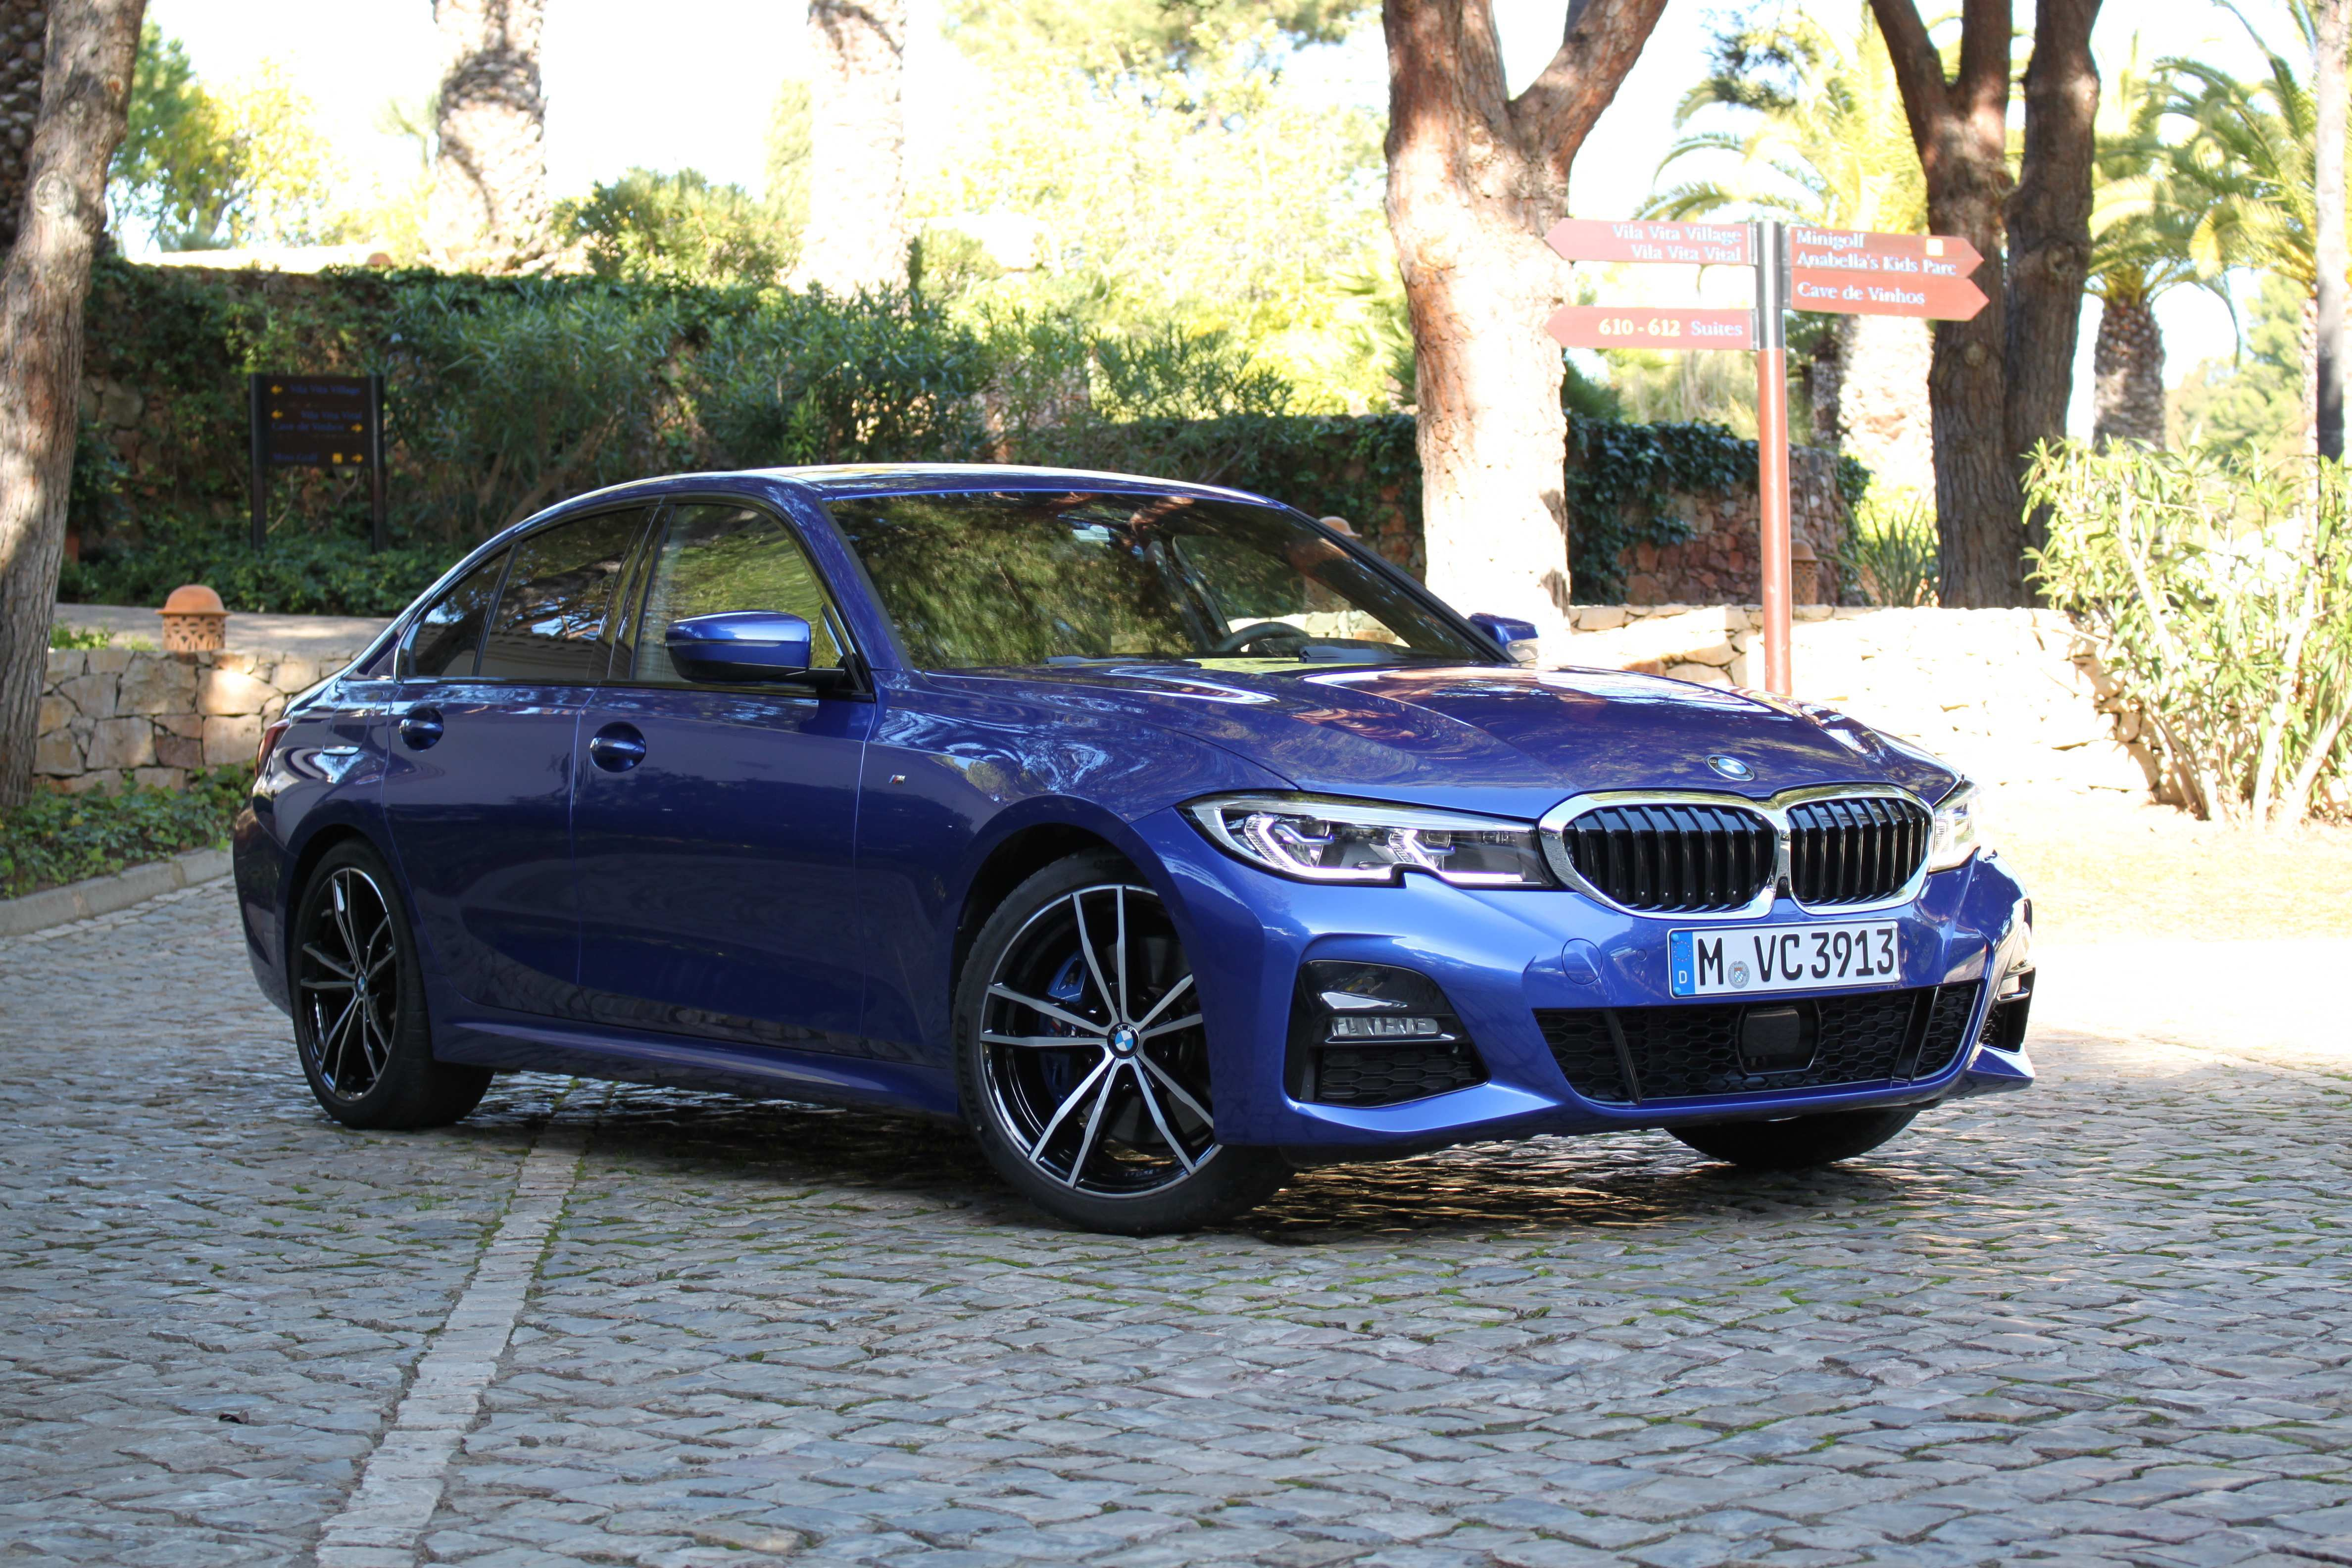 76 Great 2020 BMW 3 Series Redesign and Concept with 2020 BMW 3 Series